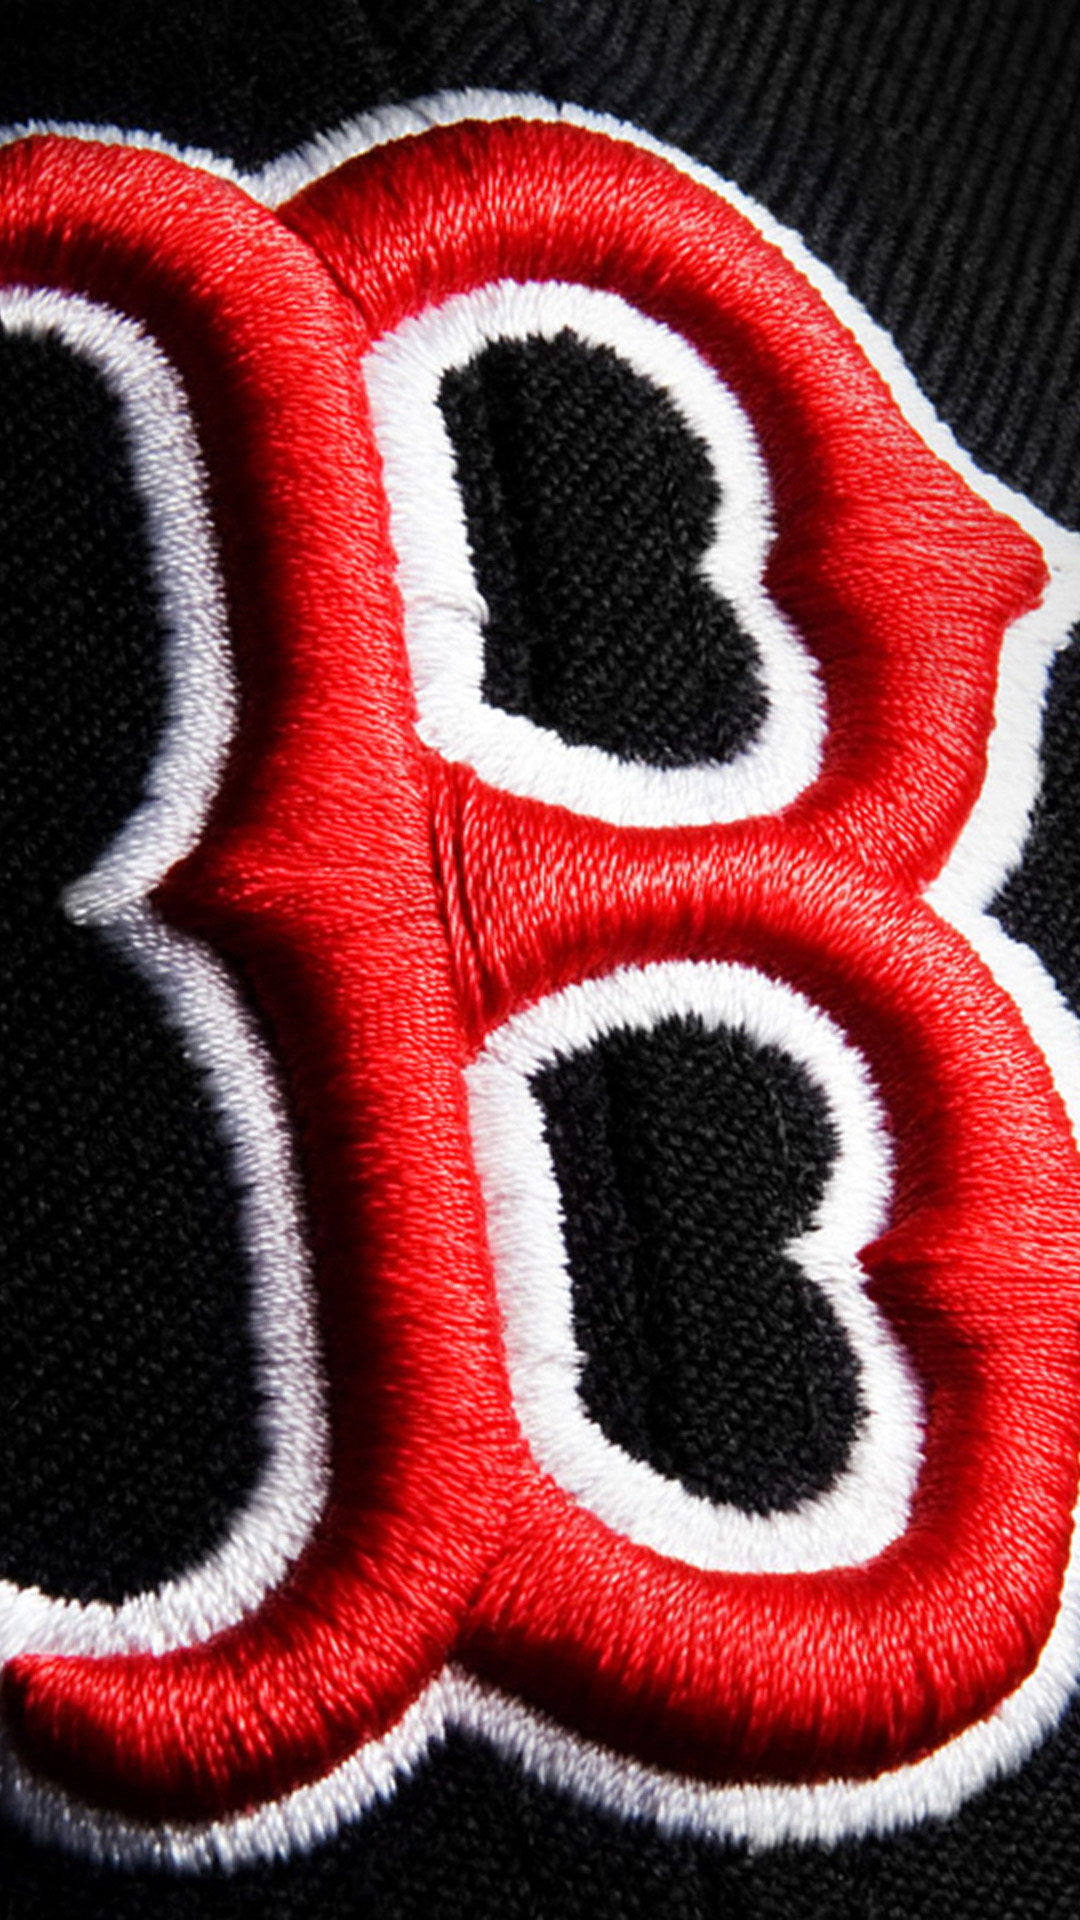 Boston red sox cap Wallpapers for Galaxy S5 1080x1920